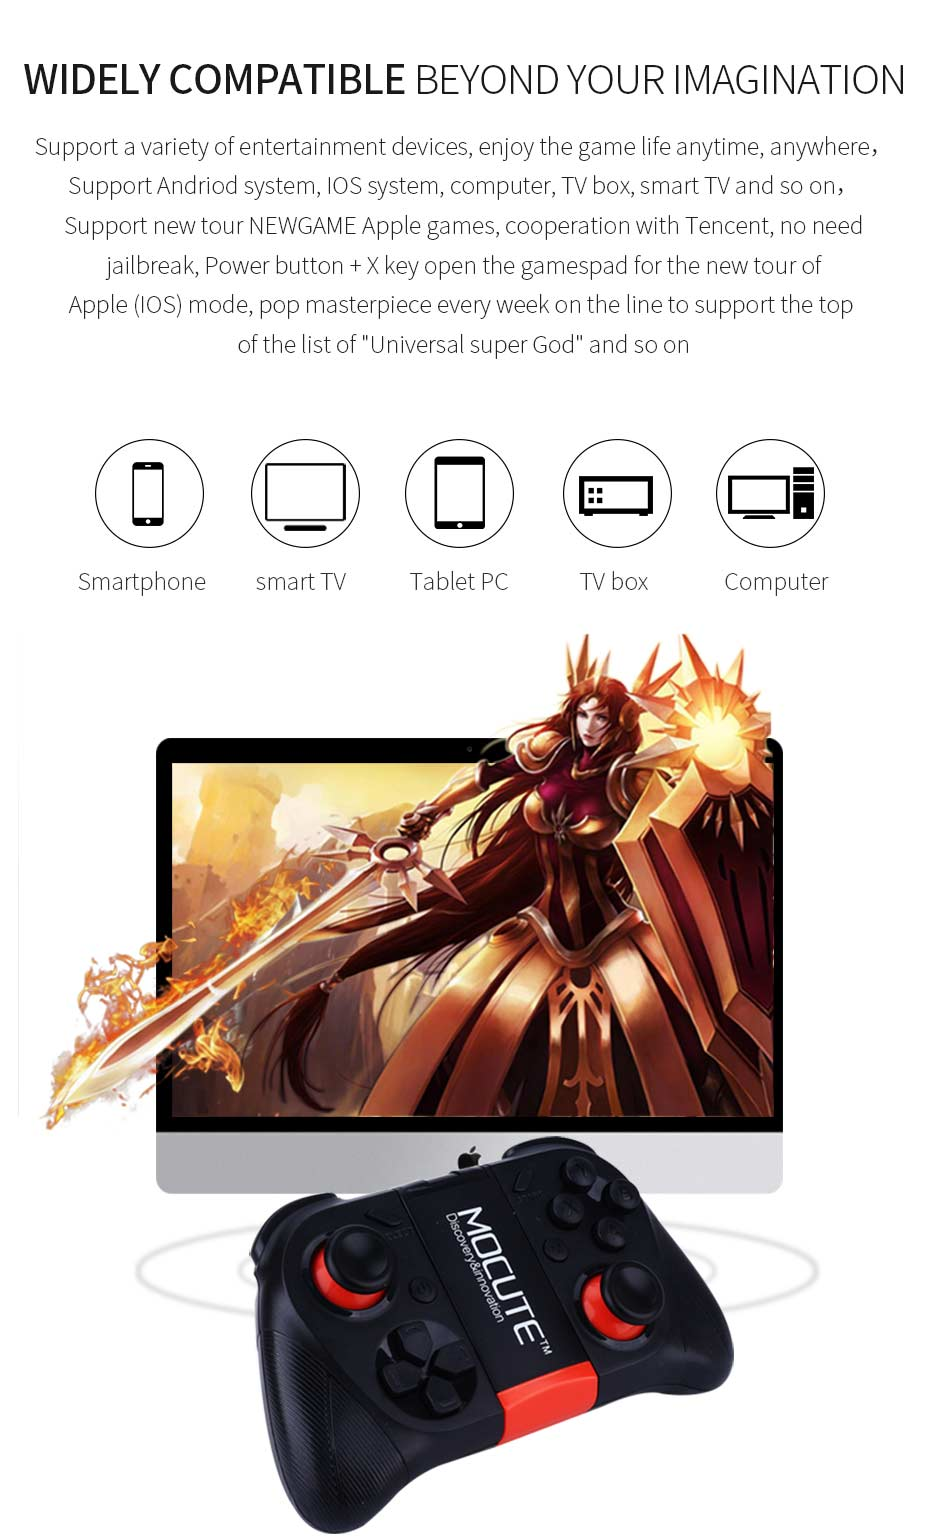 US $12 75 31% OFF|MOCUTE 050 054 VR Game Pad Android Joystick Bluetooth  Controller Selfie Remote Control Gamepad for PC Android Phone TV +  Holder-in